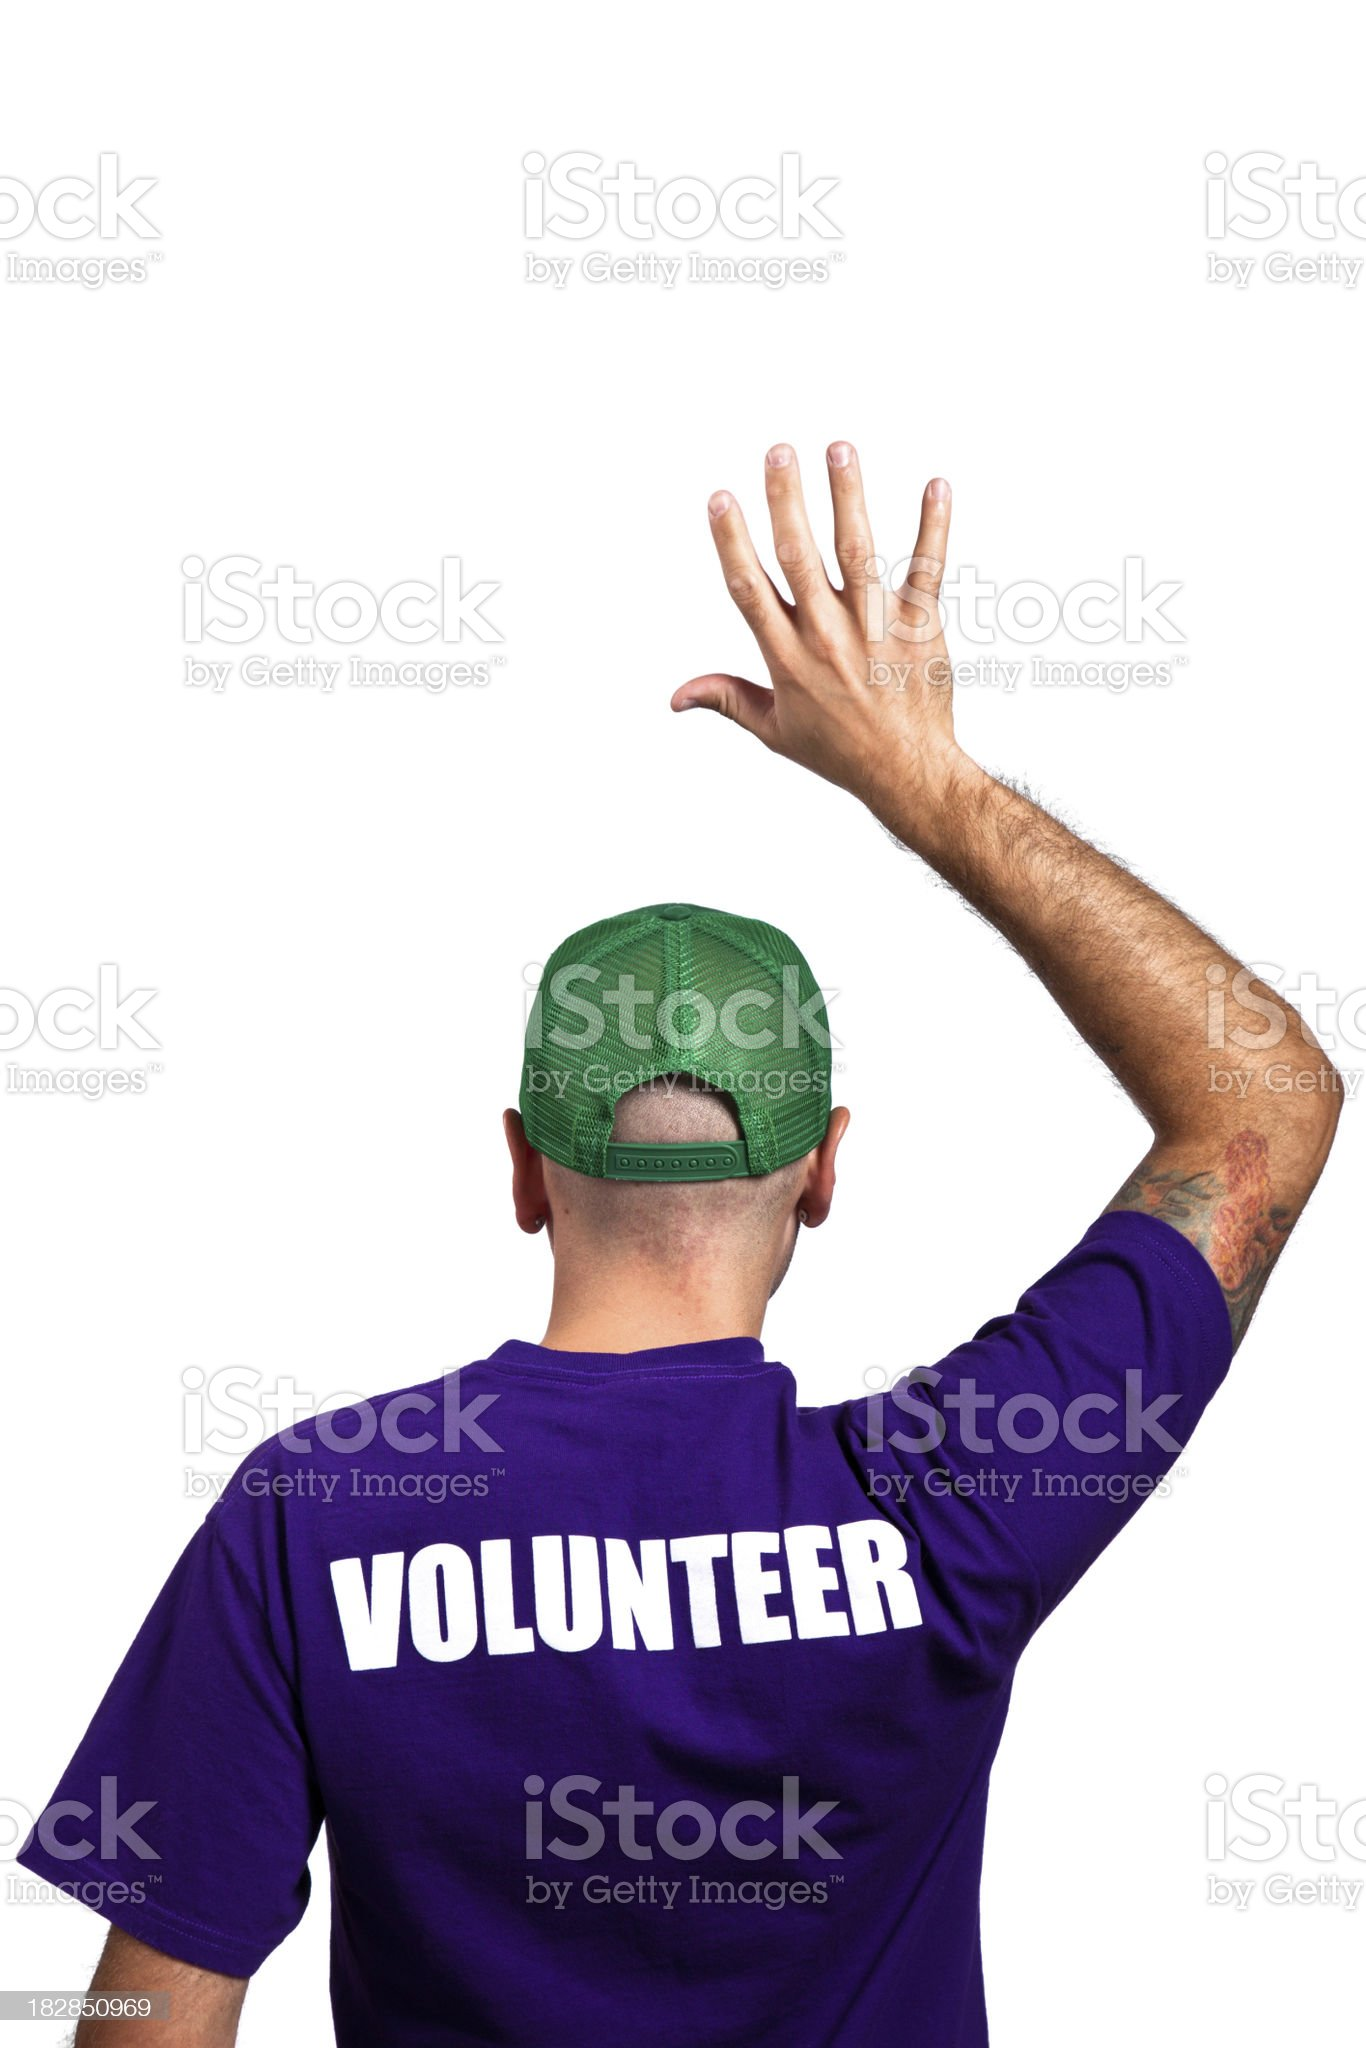 Volunteer royalty-free stock photo